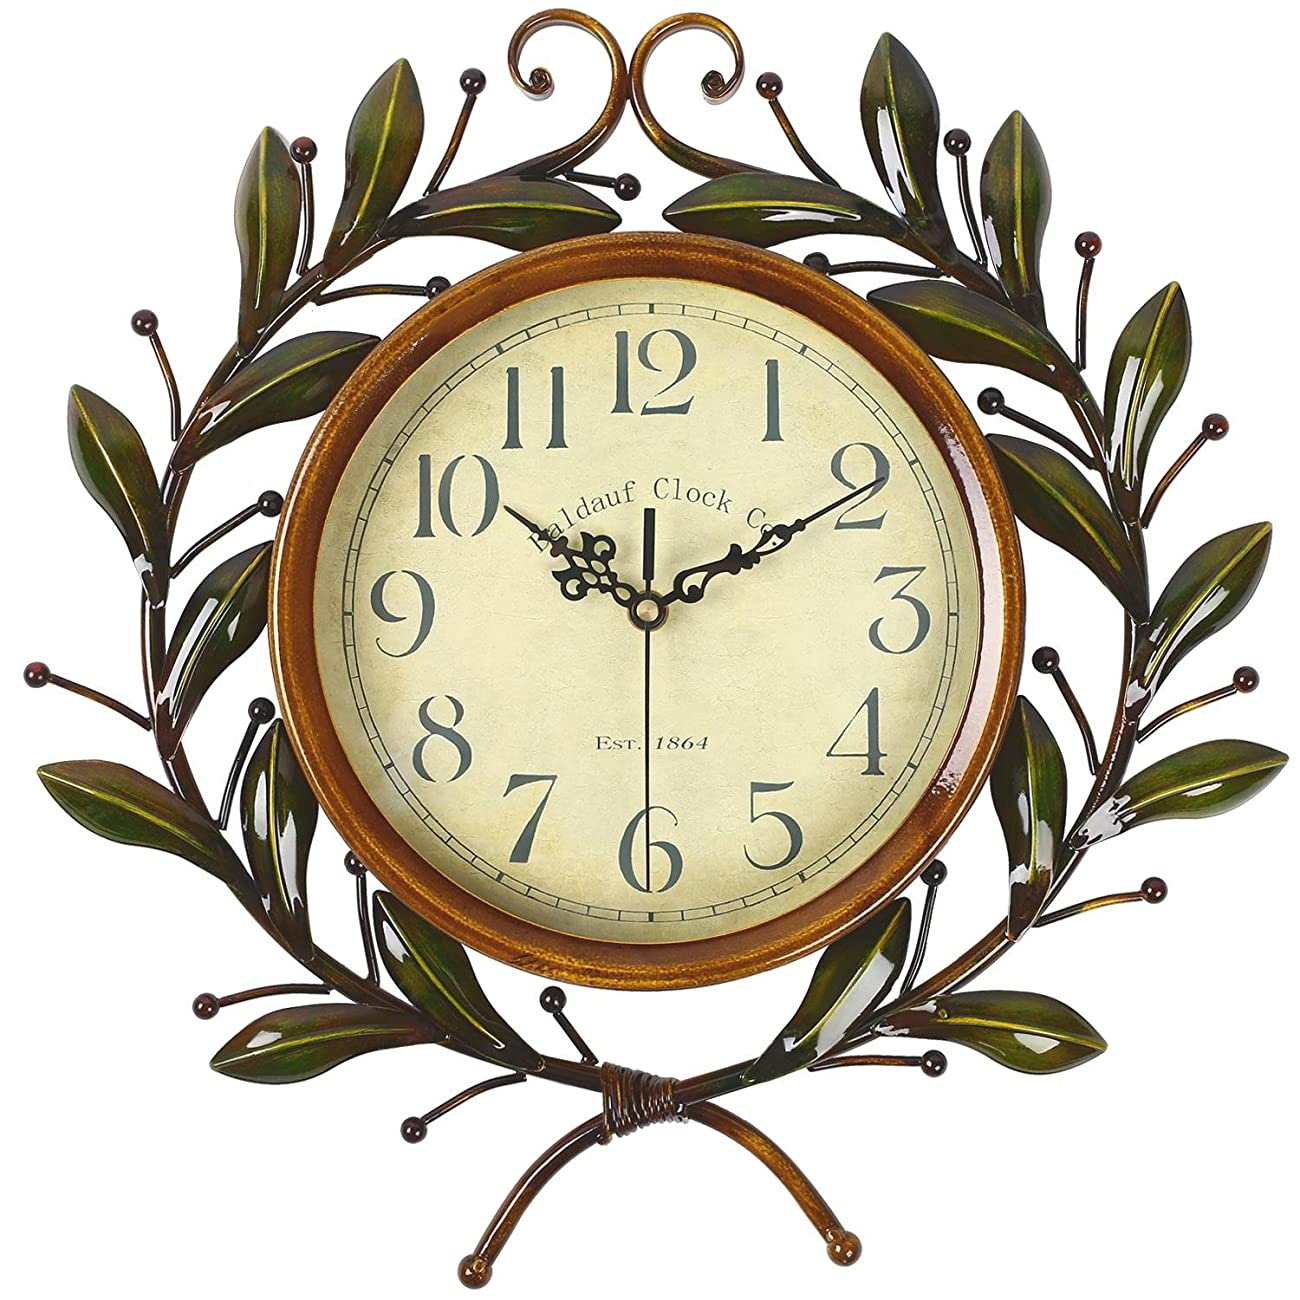 Soledi Vintage Wall Clock Classic Silent Non-ticking For Home Decoration Olive Branch Design 0